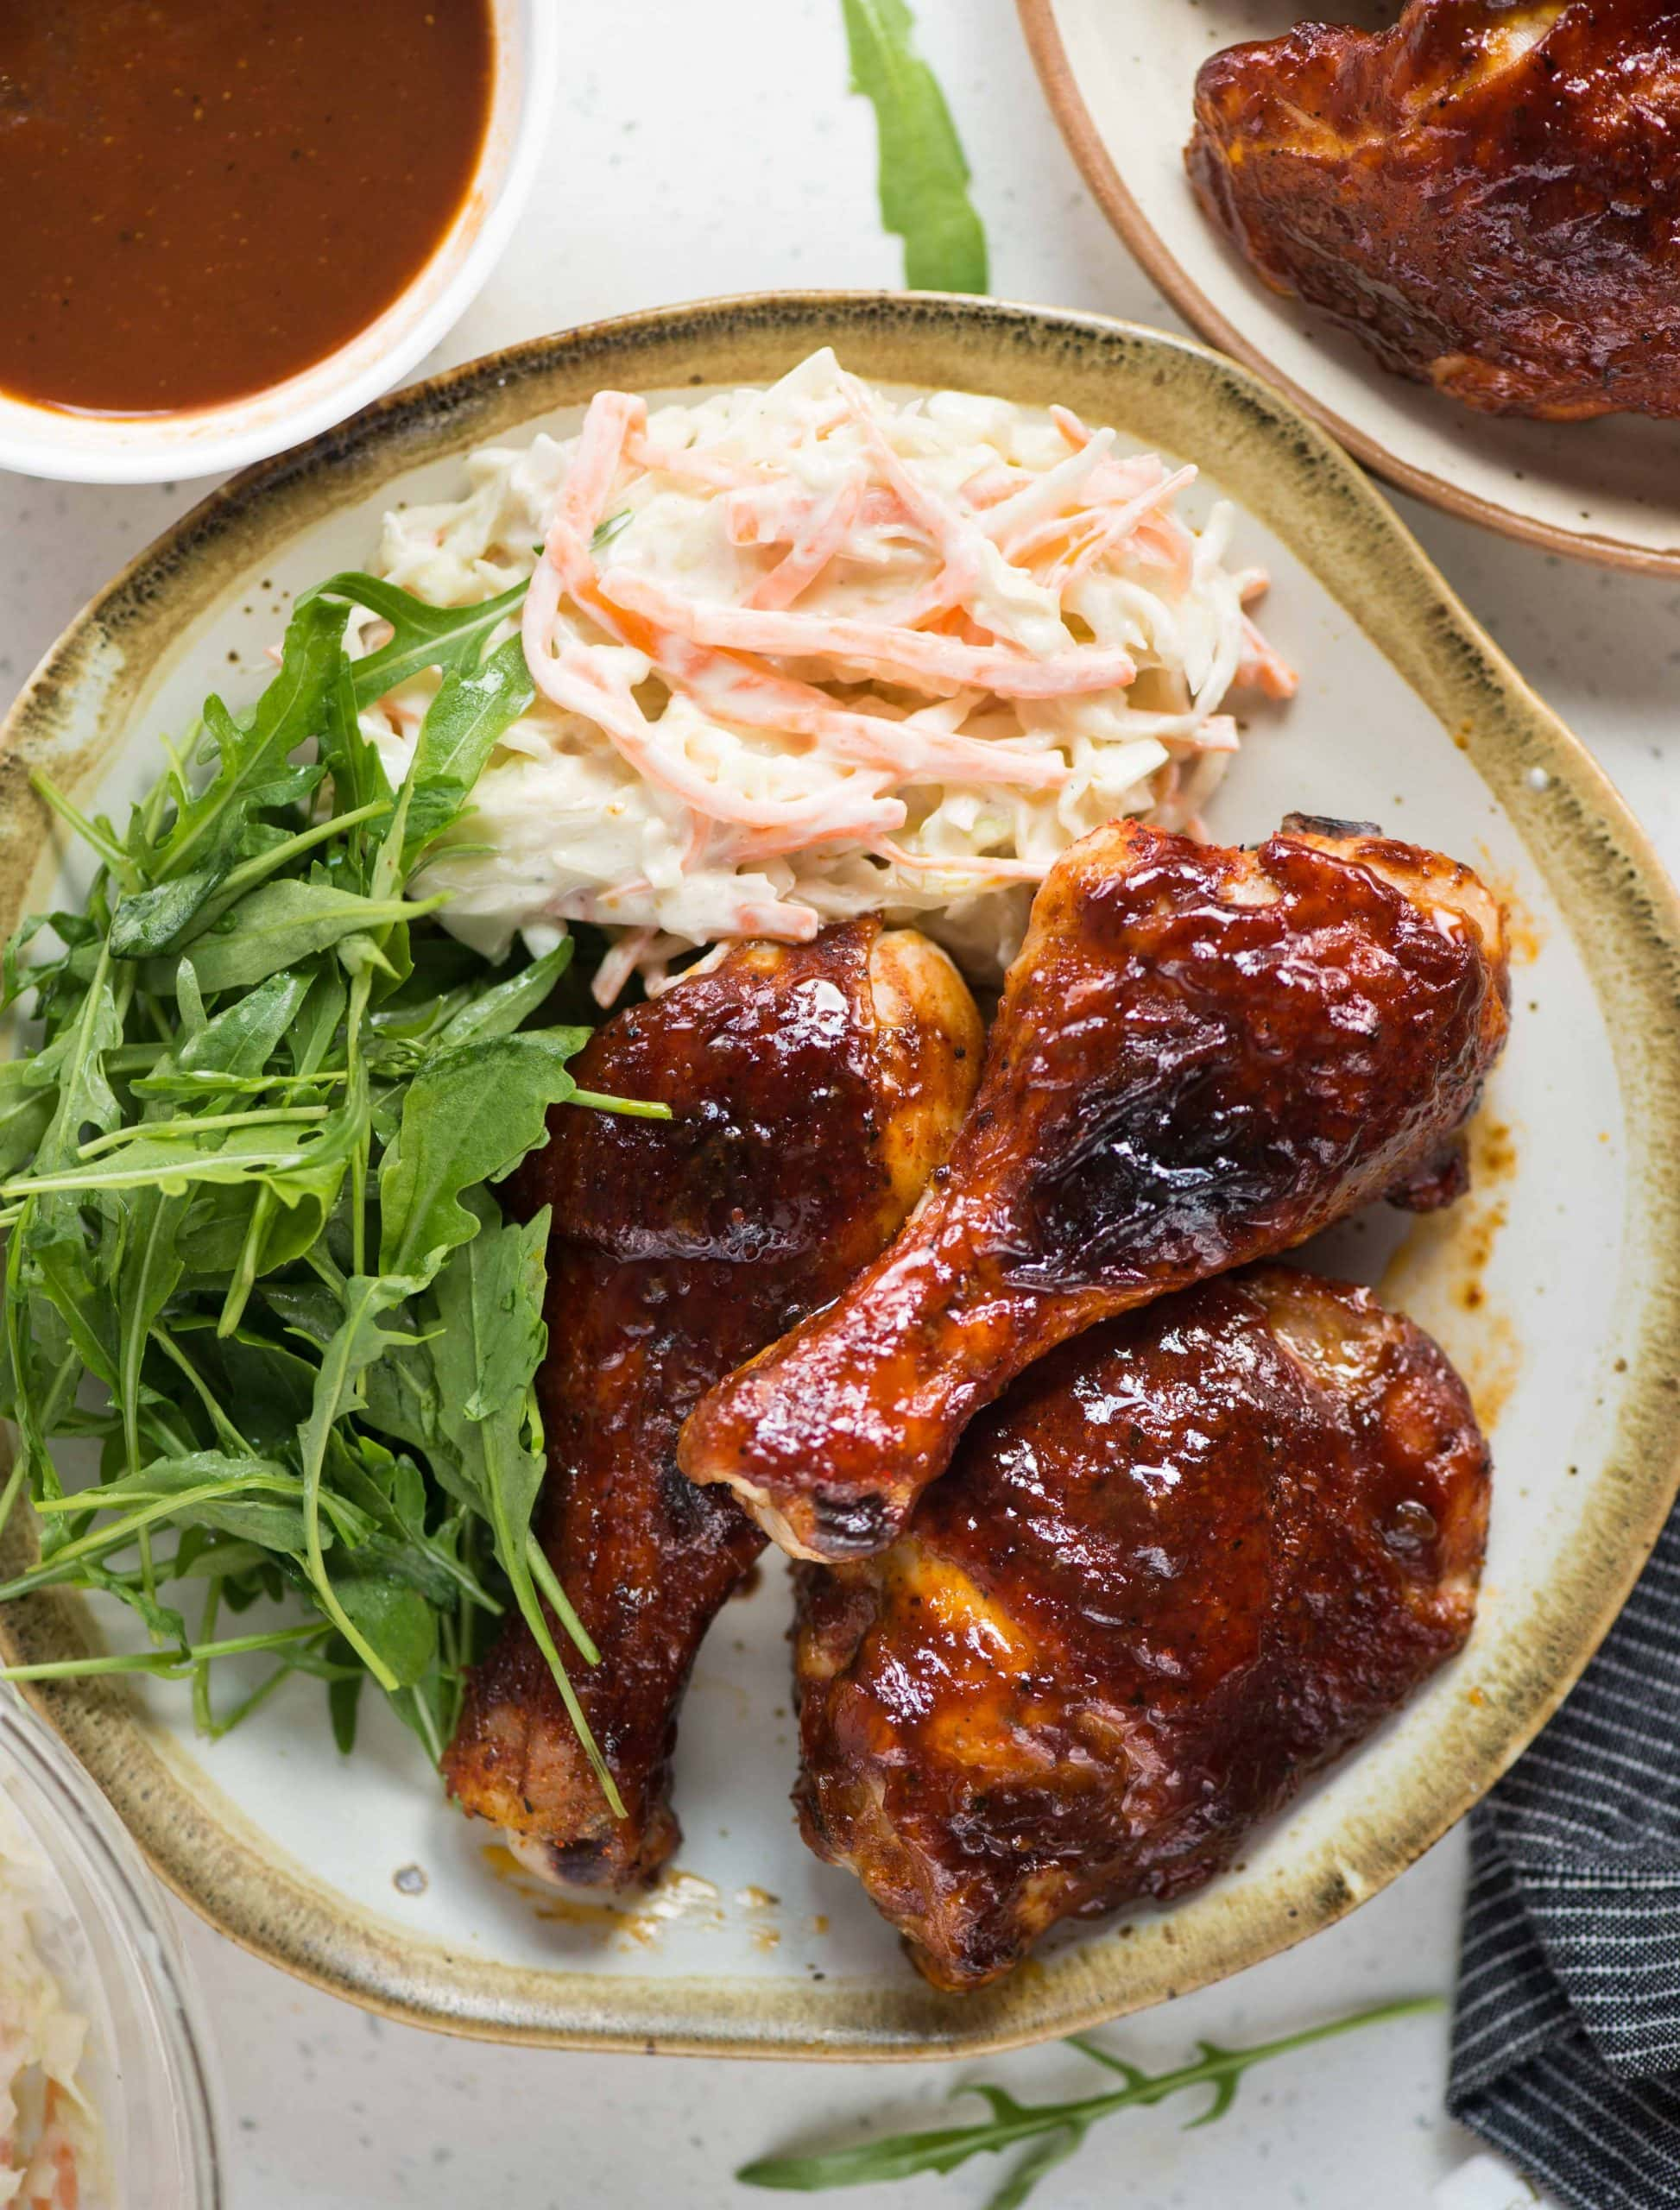 oven baked bbq chicken in 3 east steps.